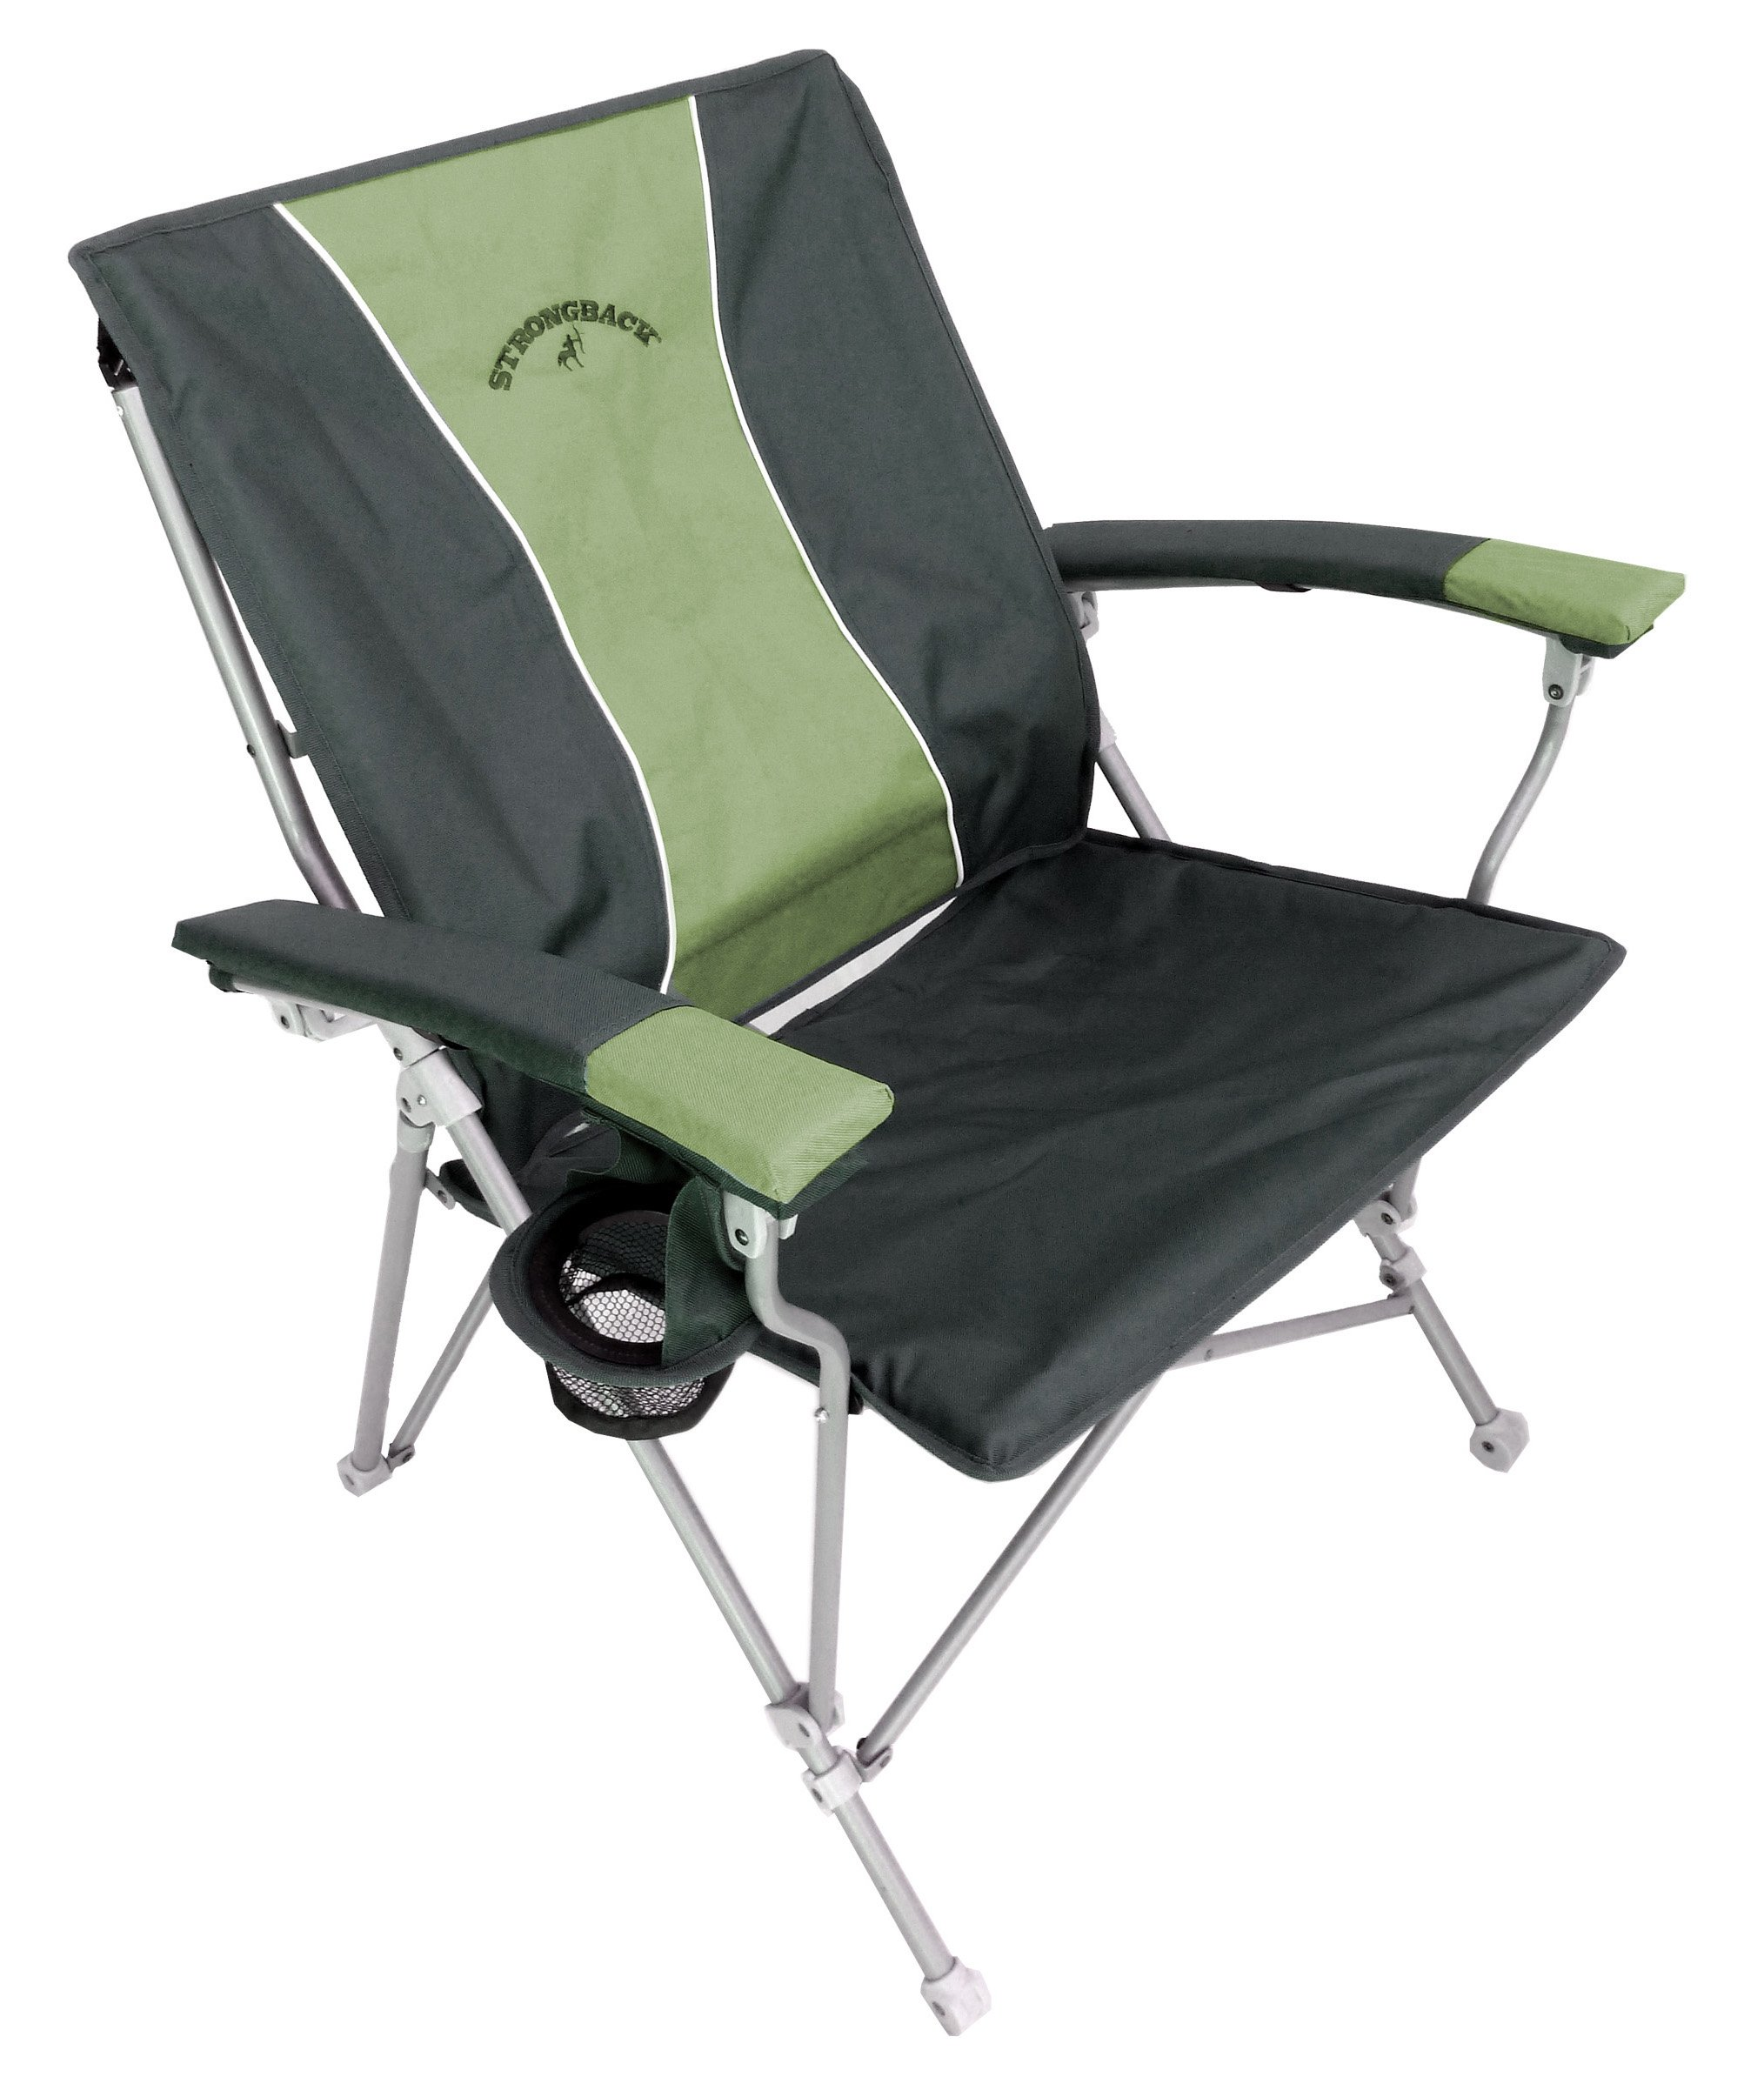 Strongback Chair Review A camp chair with support